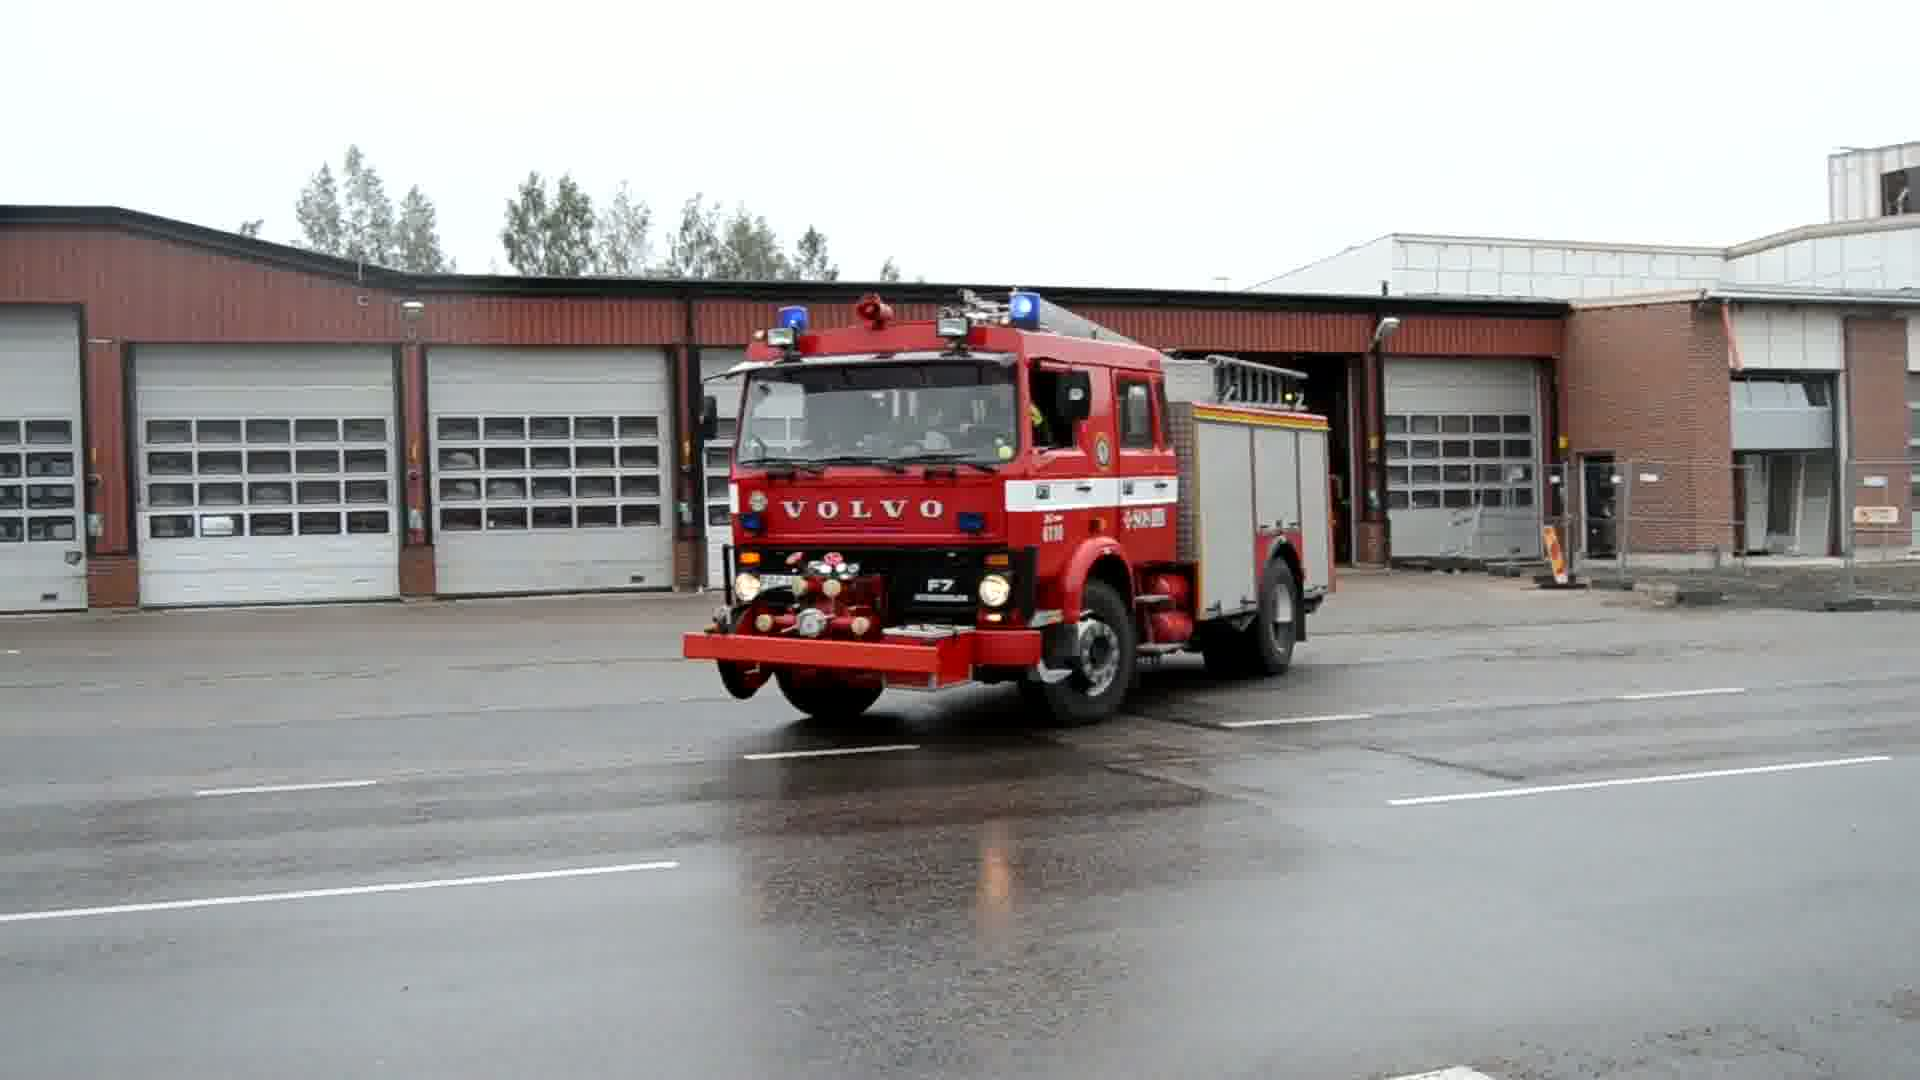 Fire department Älmhult